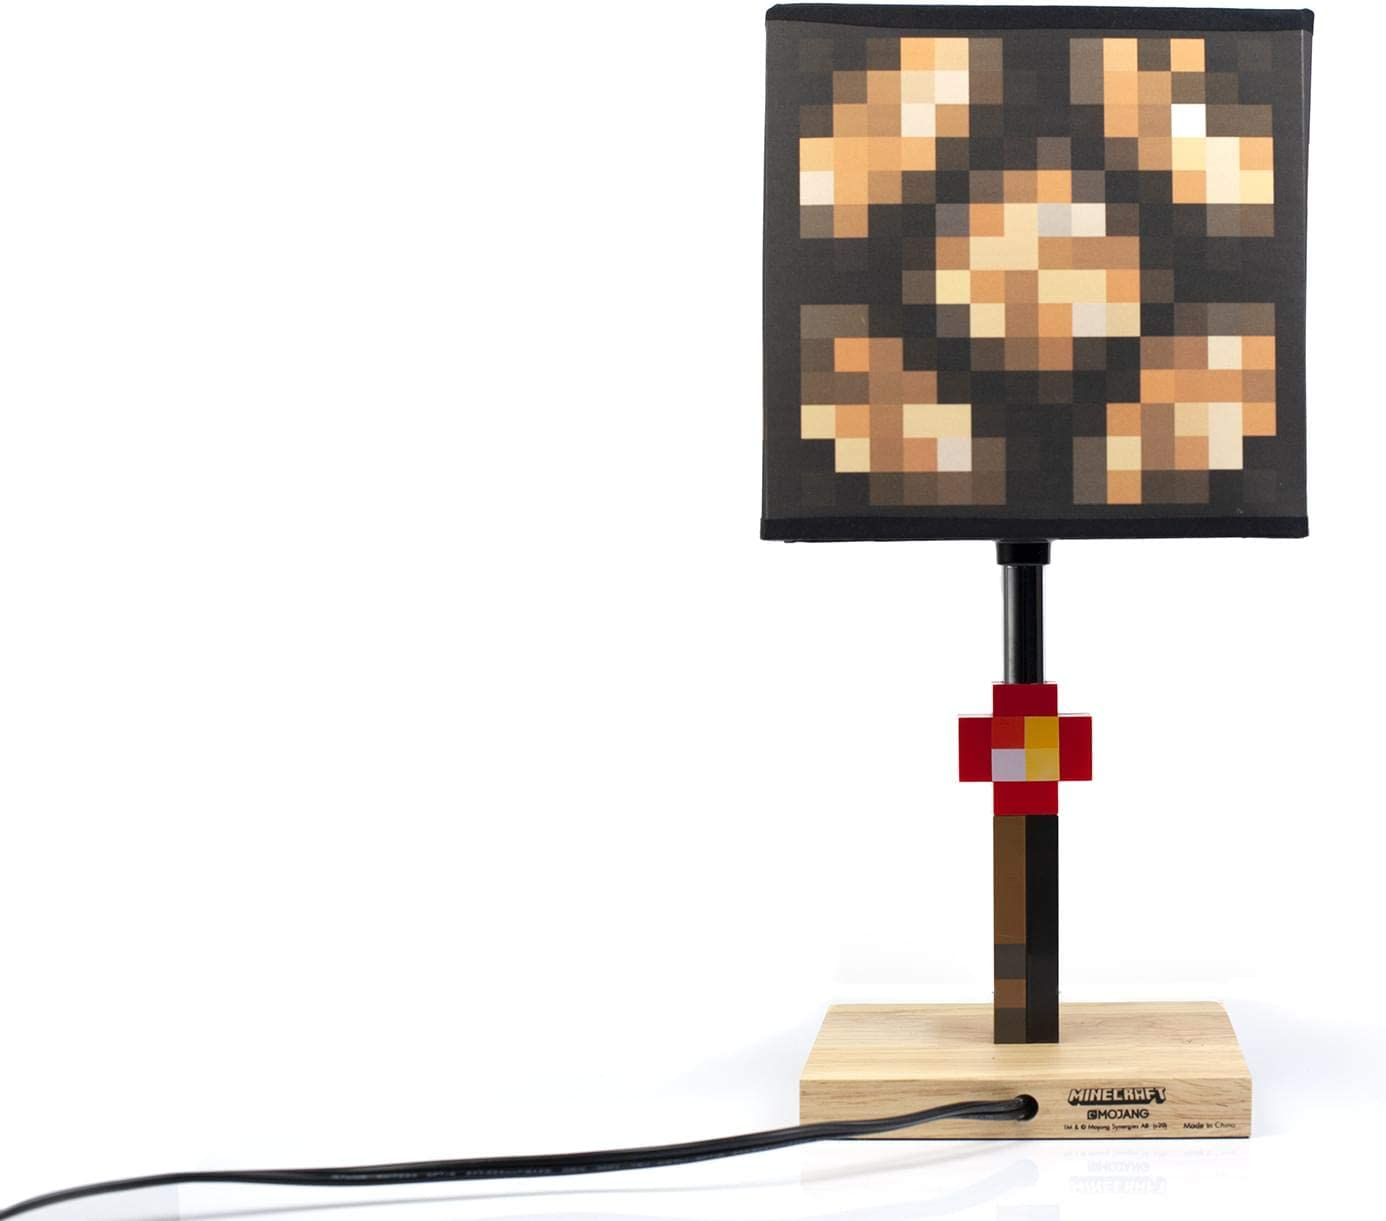 Minecraft Glowstone 10 Inch Corded Desk LED Night Light - Decorative, Fun,  Safe & Awesome Bedside Mood Lamp Toy for Baby, Boys, Teen, Adults & Gamers